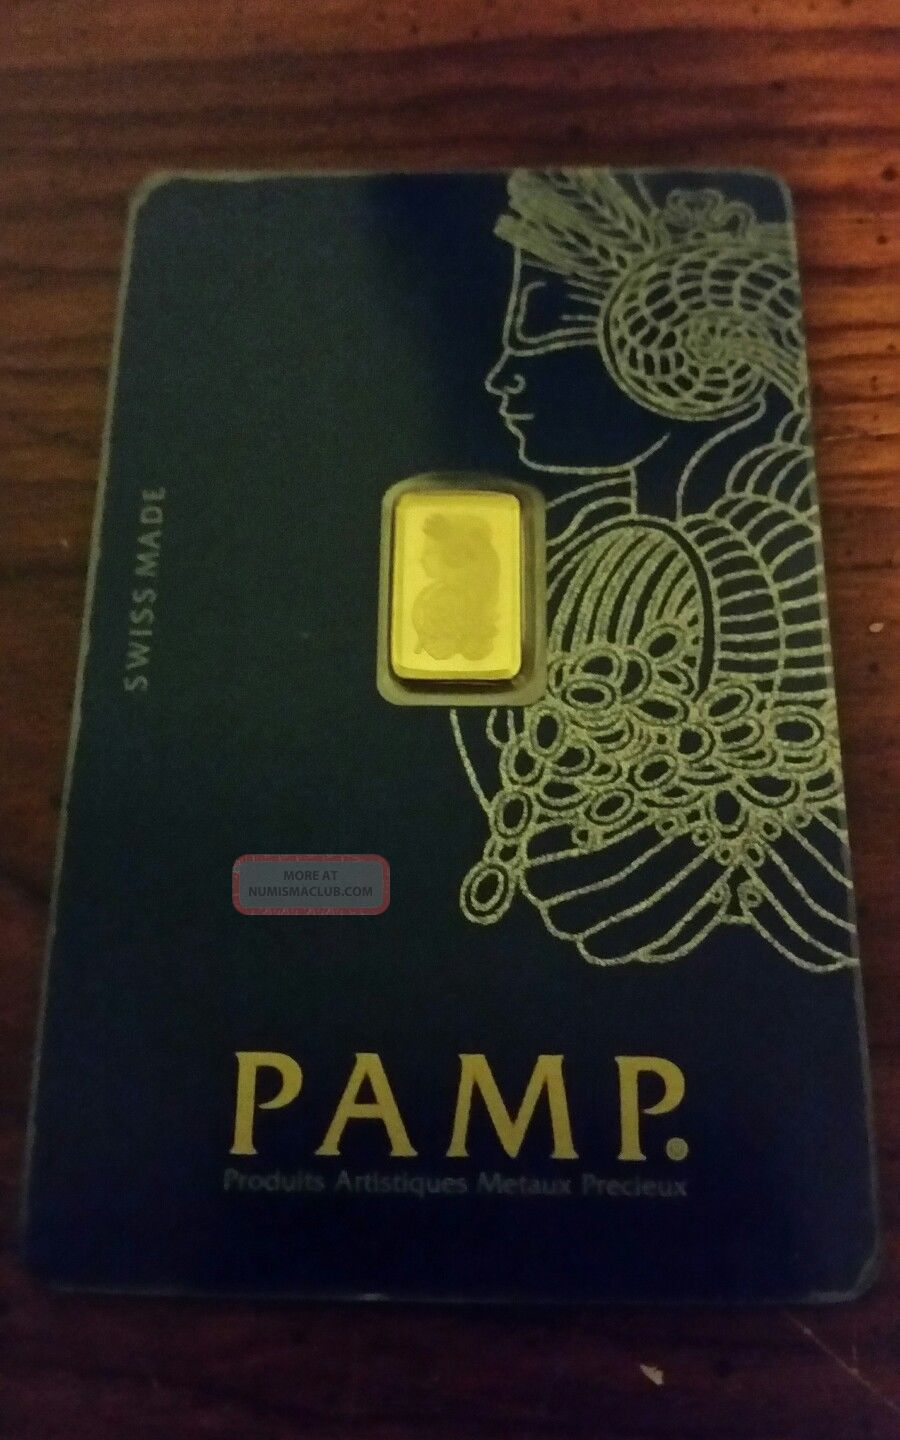 Pamp Suisse 1 Gram.  9999 Gold Bar Fortuna With Assay Certificate Gold photo